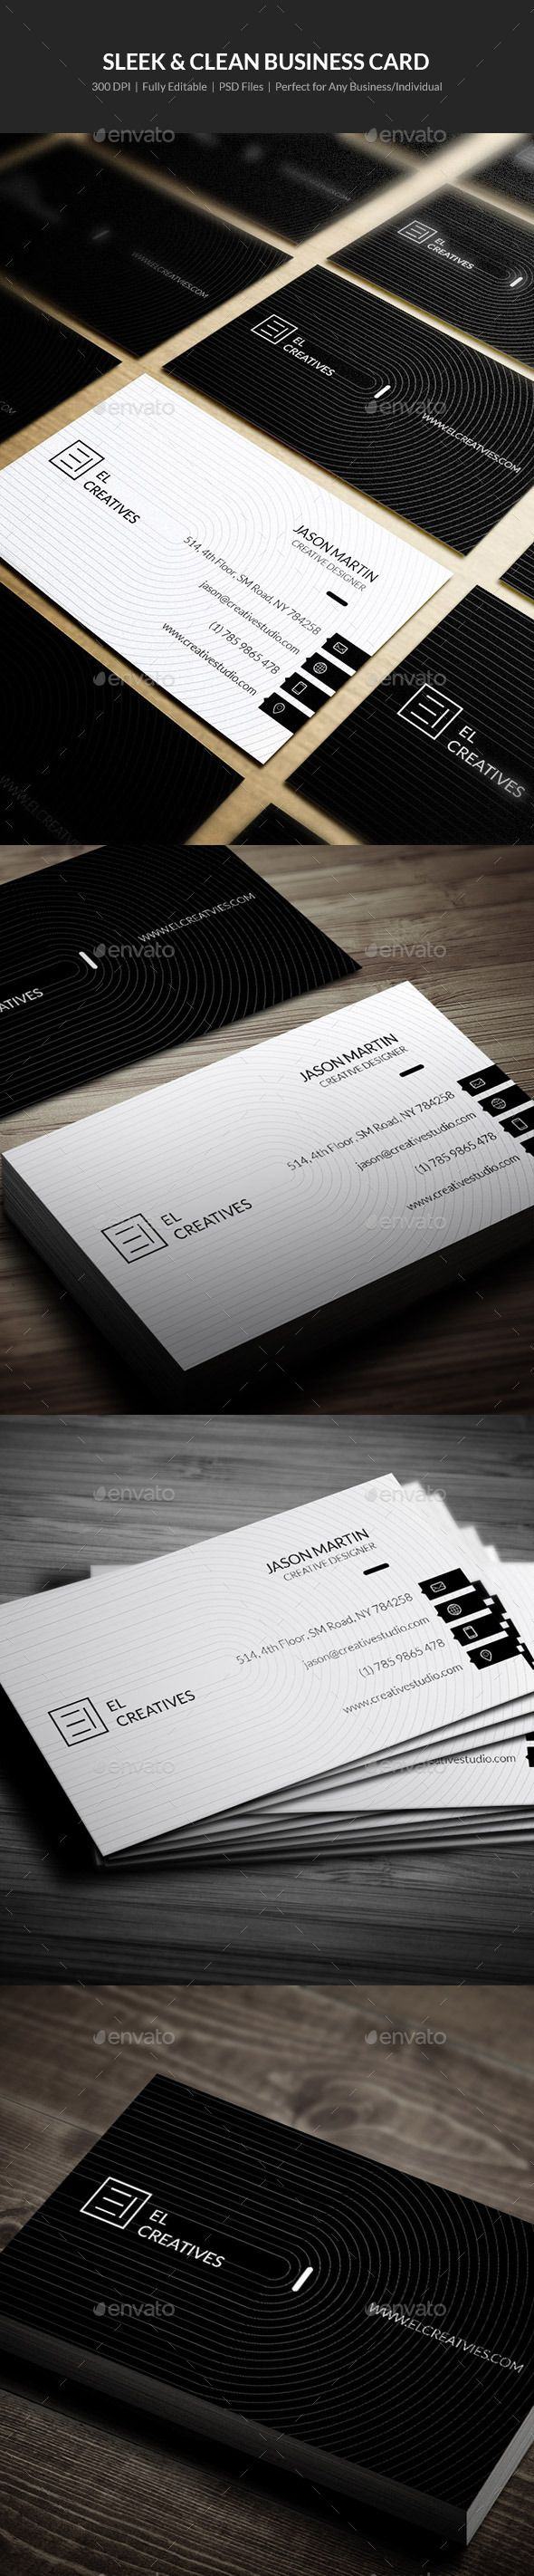 Best 25 cleaning business cards ideas on pinterest visit cards sleek clean business card 15 magicingreecefo Images